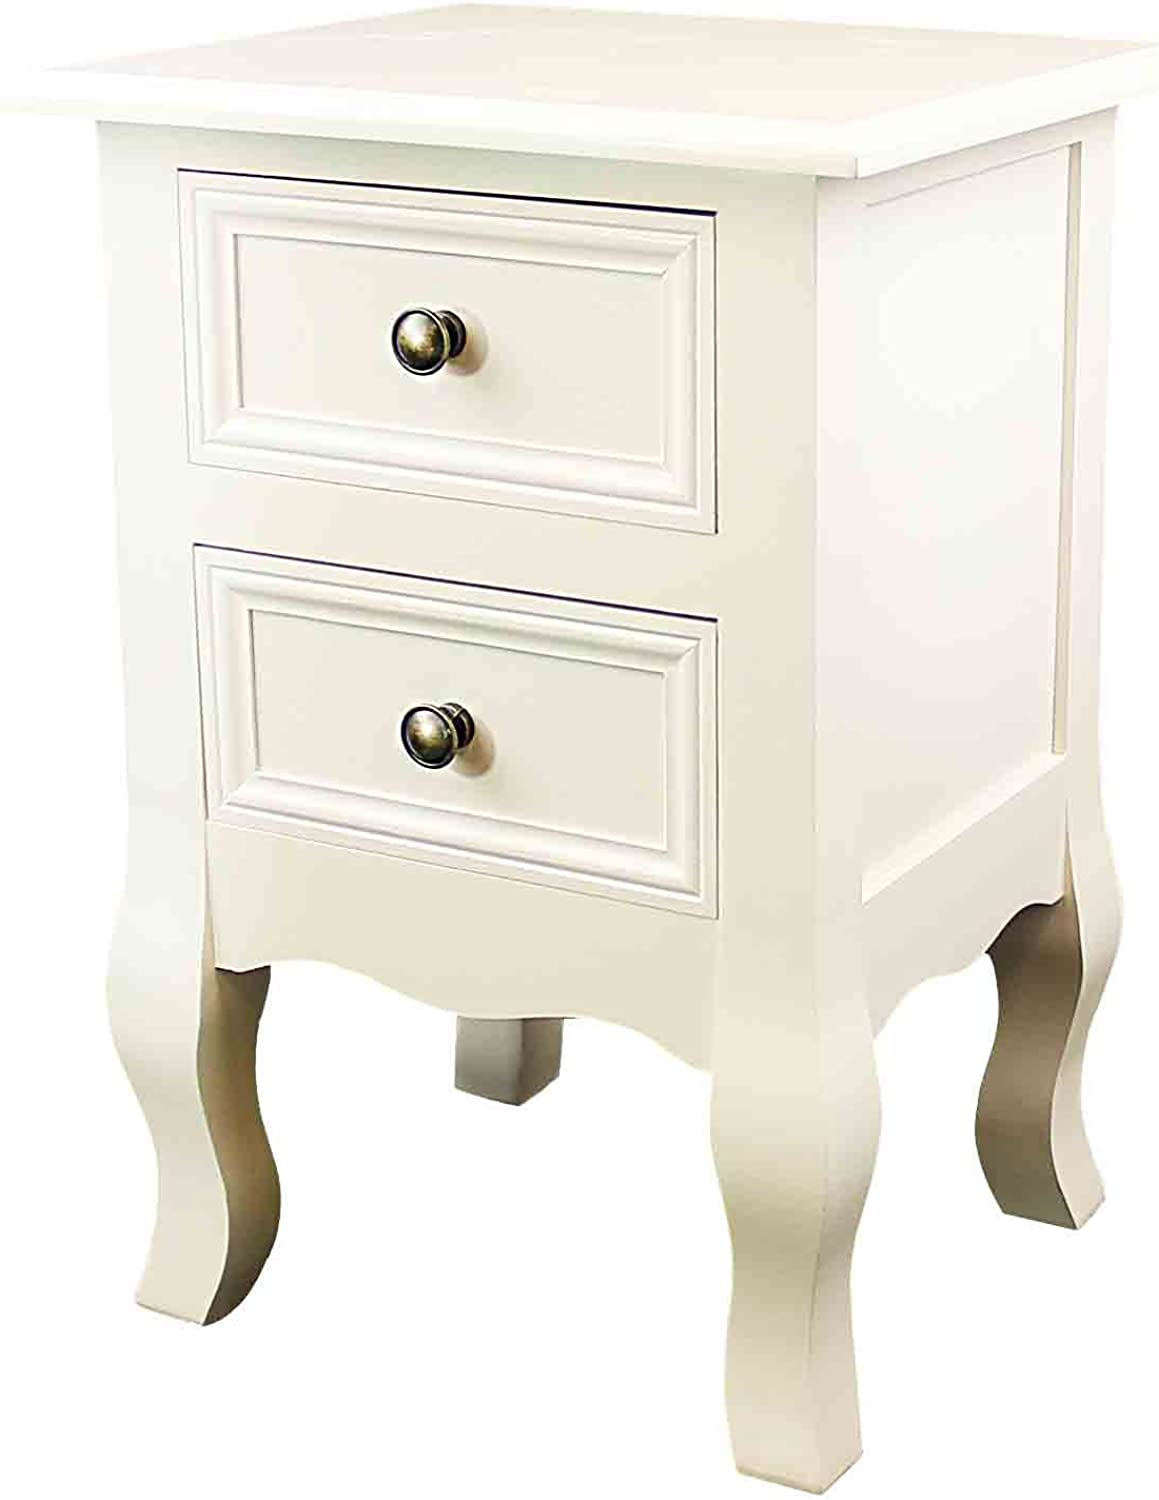 DL furniture Furniture002 Fully Assembled MDF Wood British Style Tea Night Stand 2 Drawer Storage Shelf Organizer   Finish  Ivory